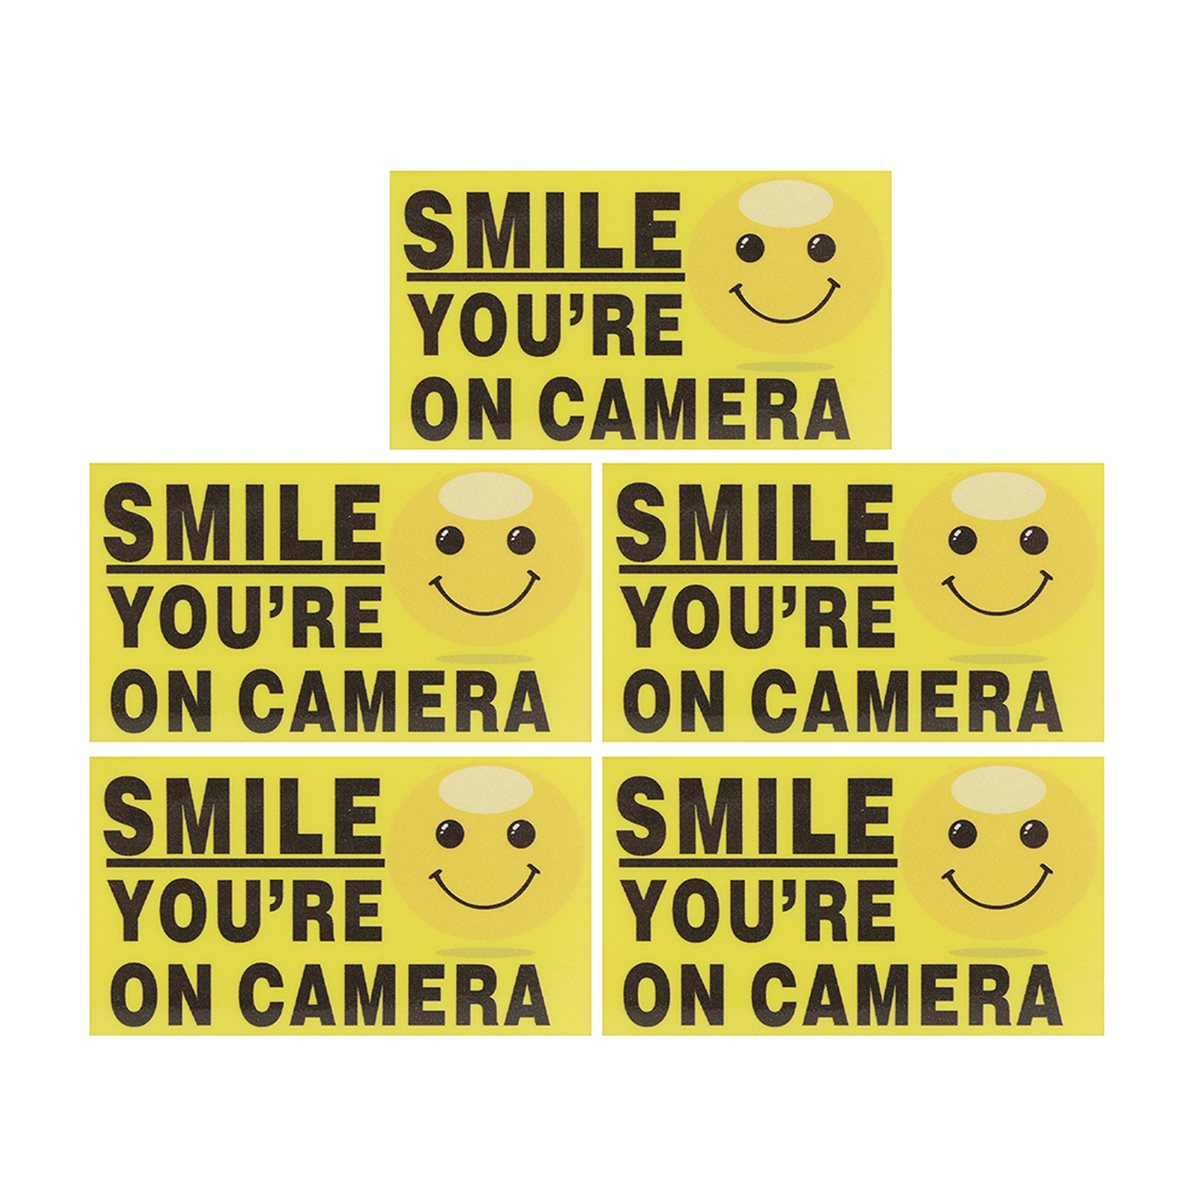 Safurance 5x Smile You're On Camera Self-adhensive CCTV Video Alarm Safety Stickers Signs Decal Home Security Warning 10pcs lot 200 250mm yellow and black decal sticker warning board 24hr cctv surveillance security camera sticker decal signs